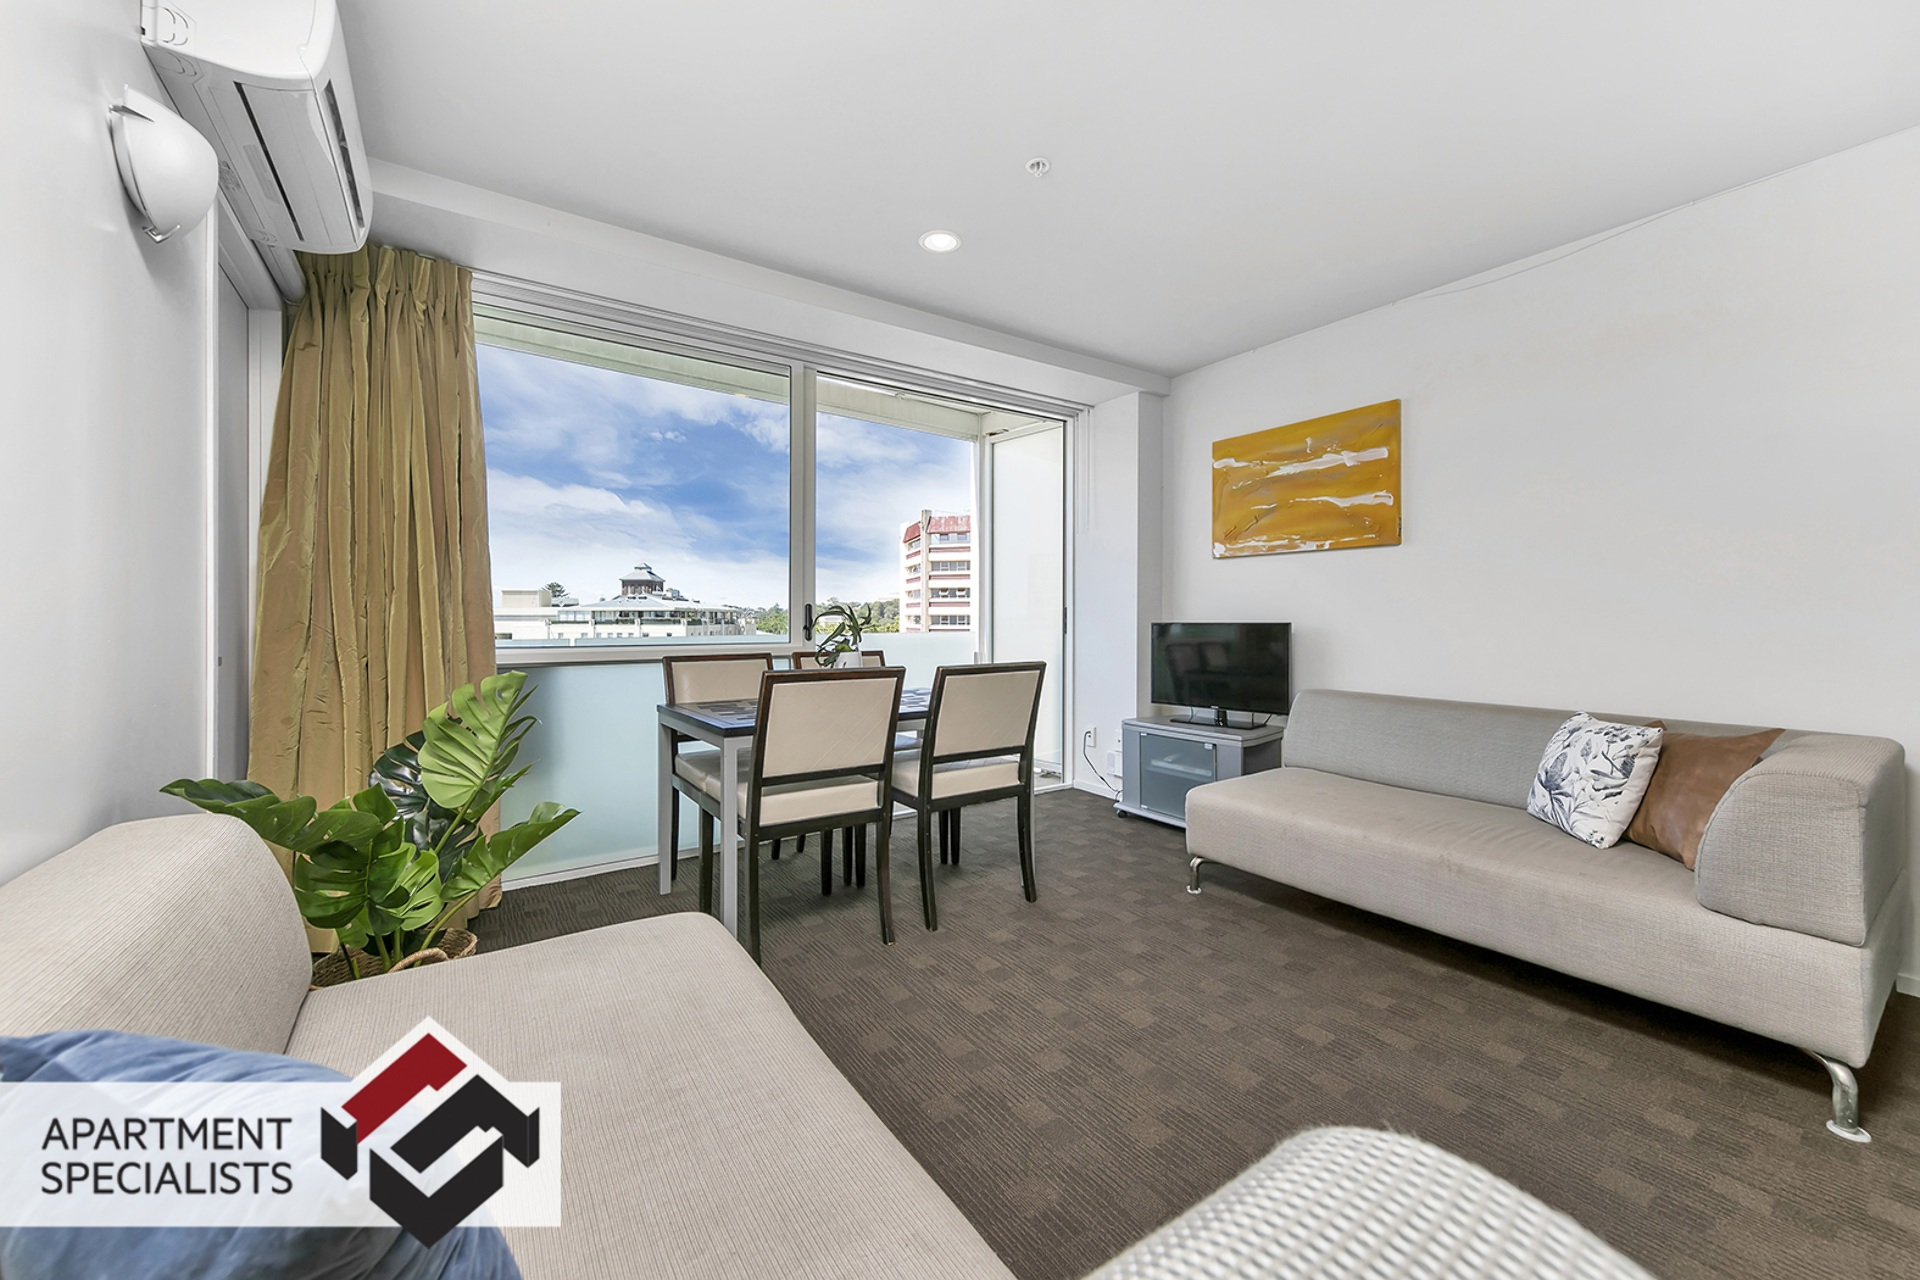 3 | 10 Waterloo Quadrant, City Centre | Apartment Specialists